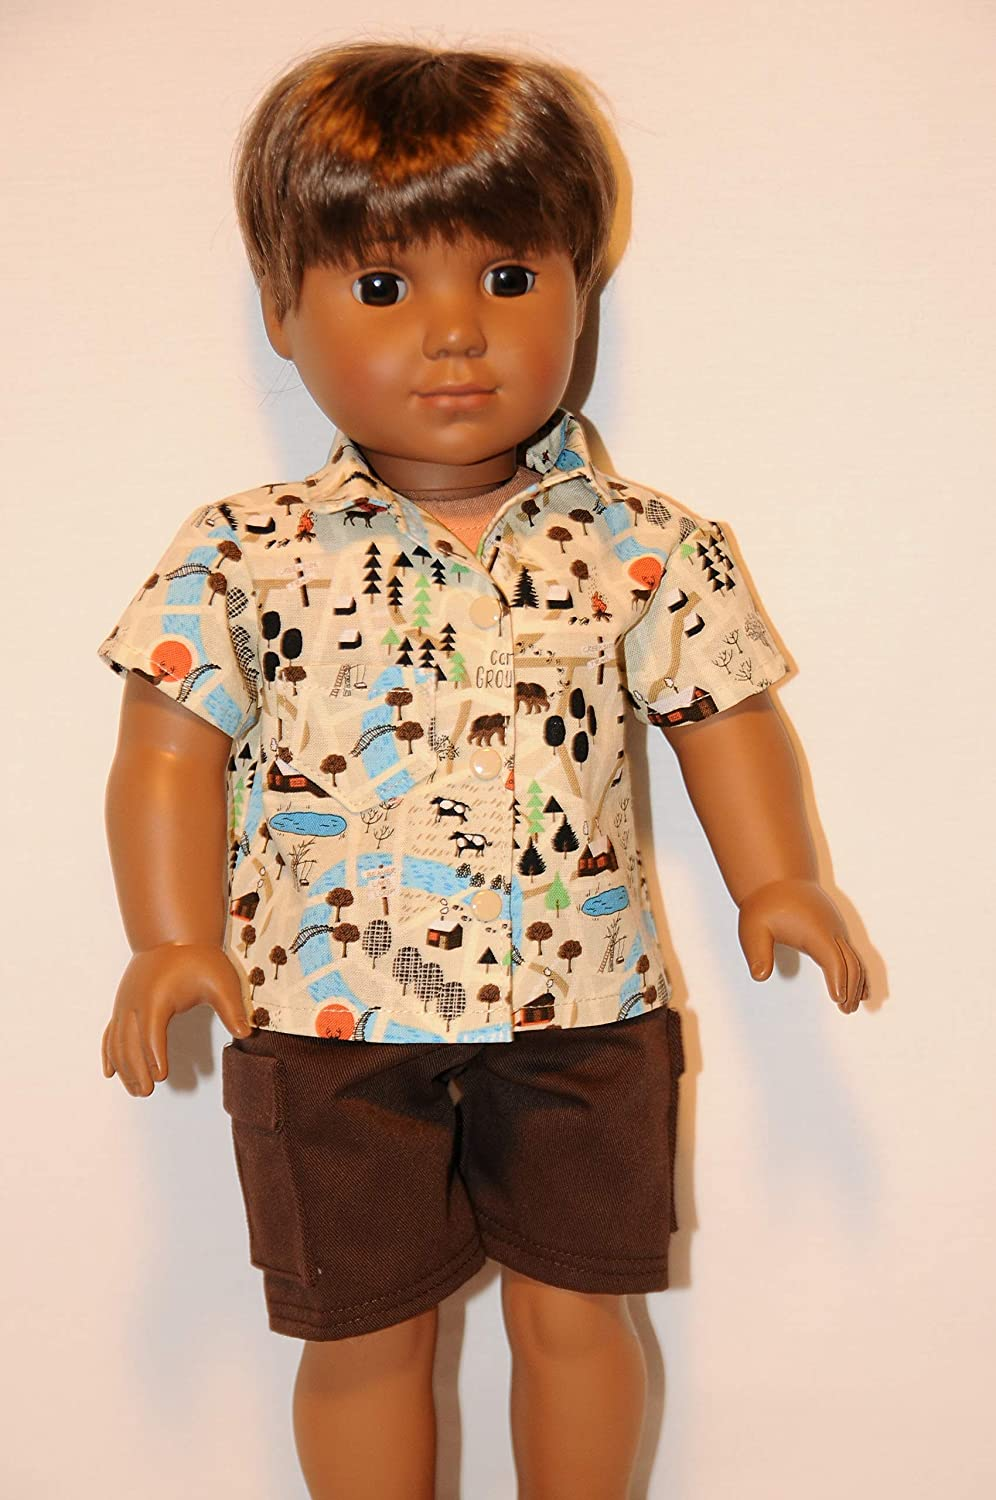 Tan Camping Outfit for 18 Dolls